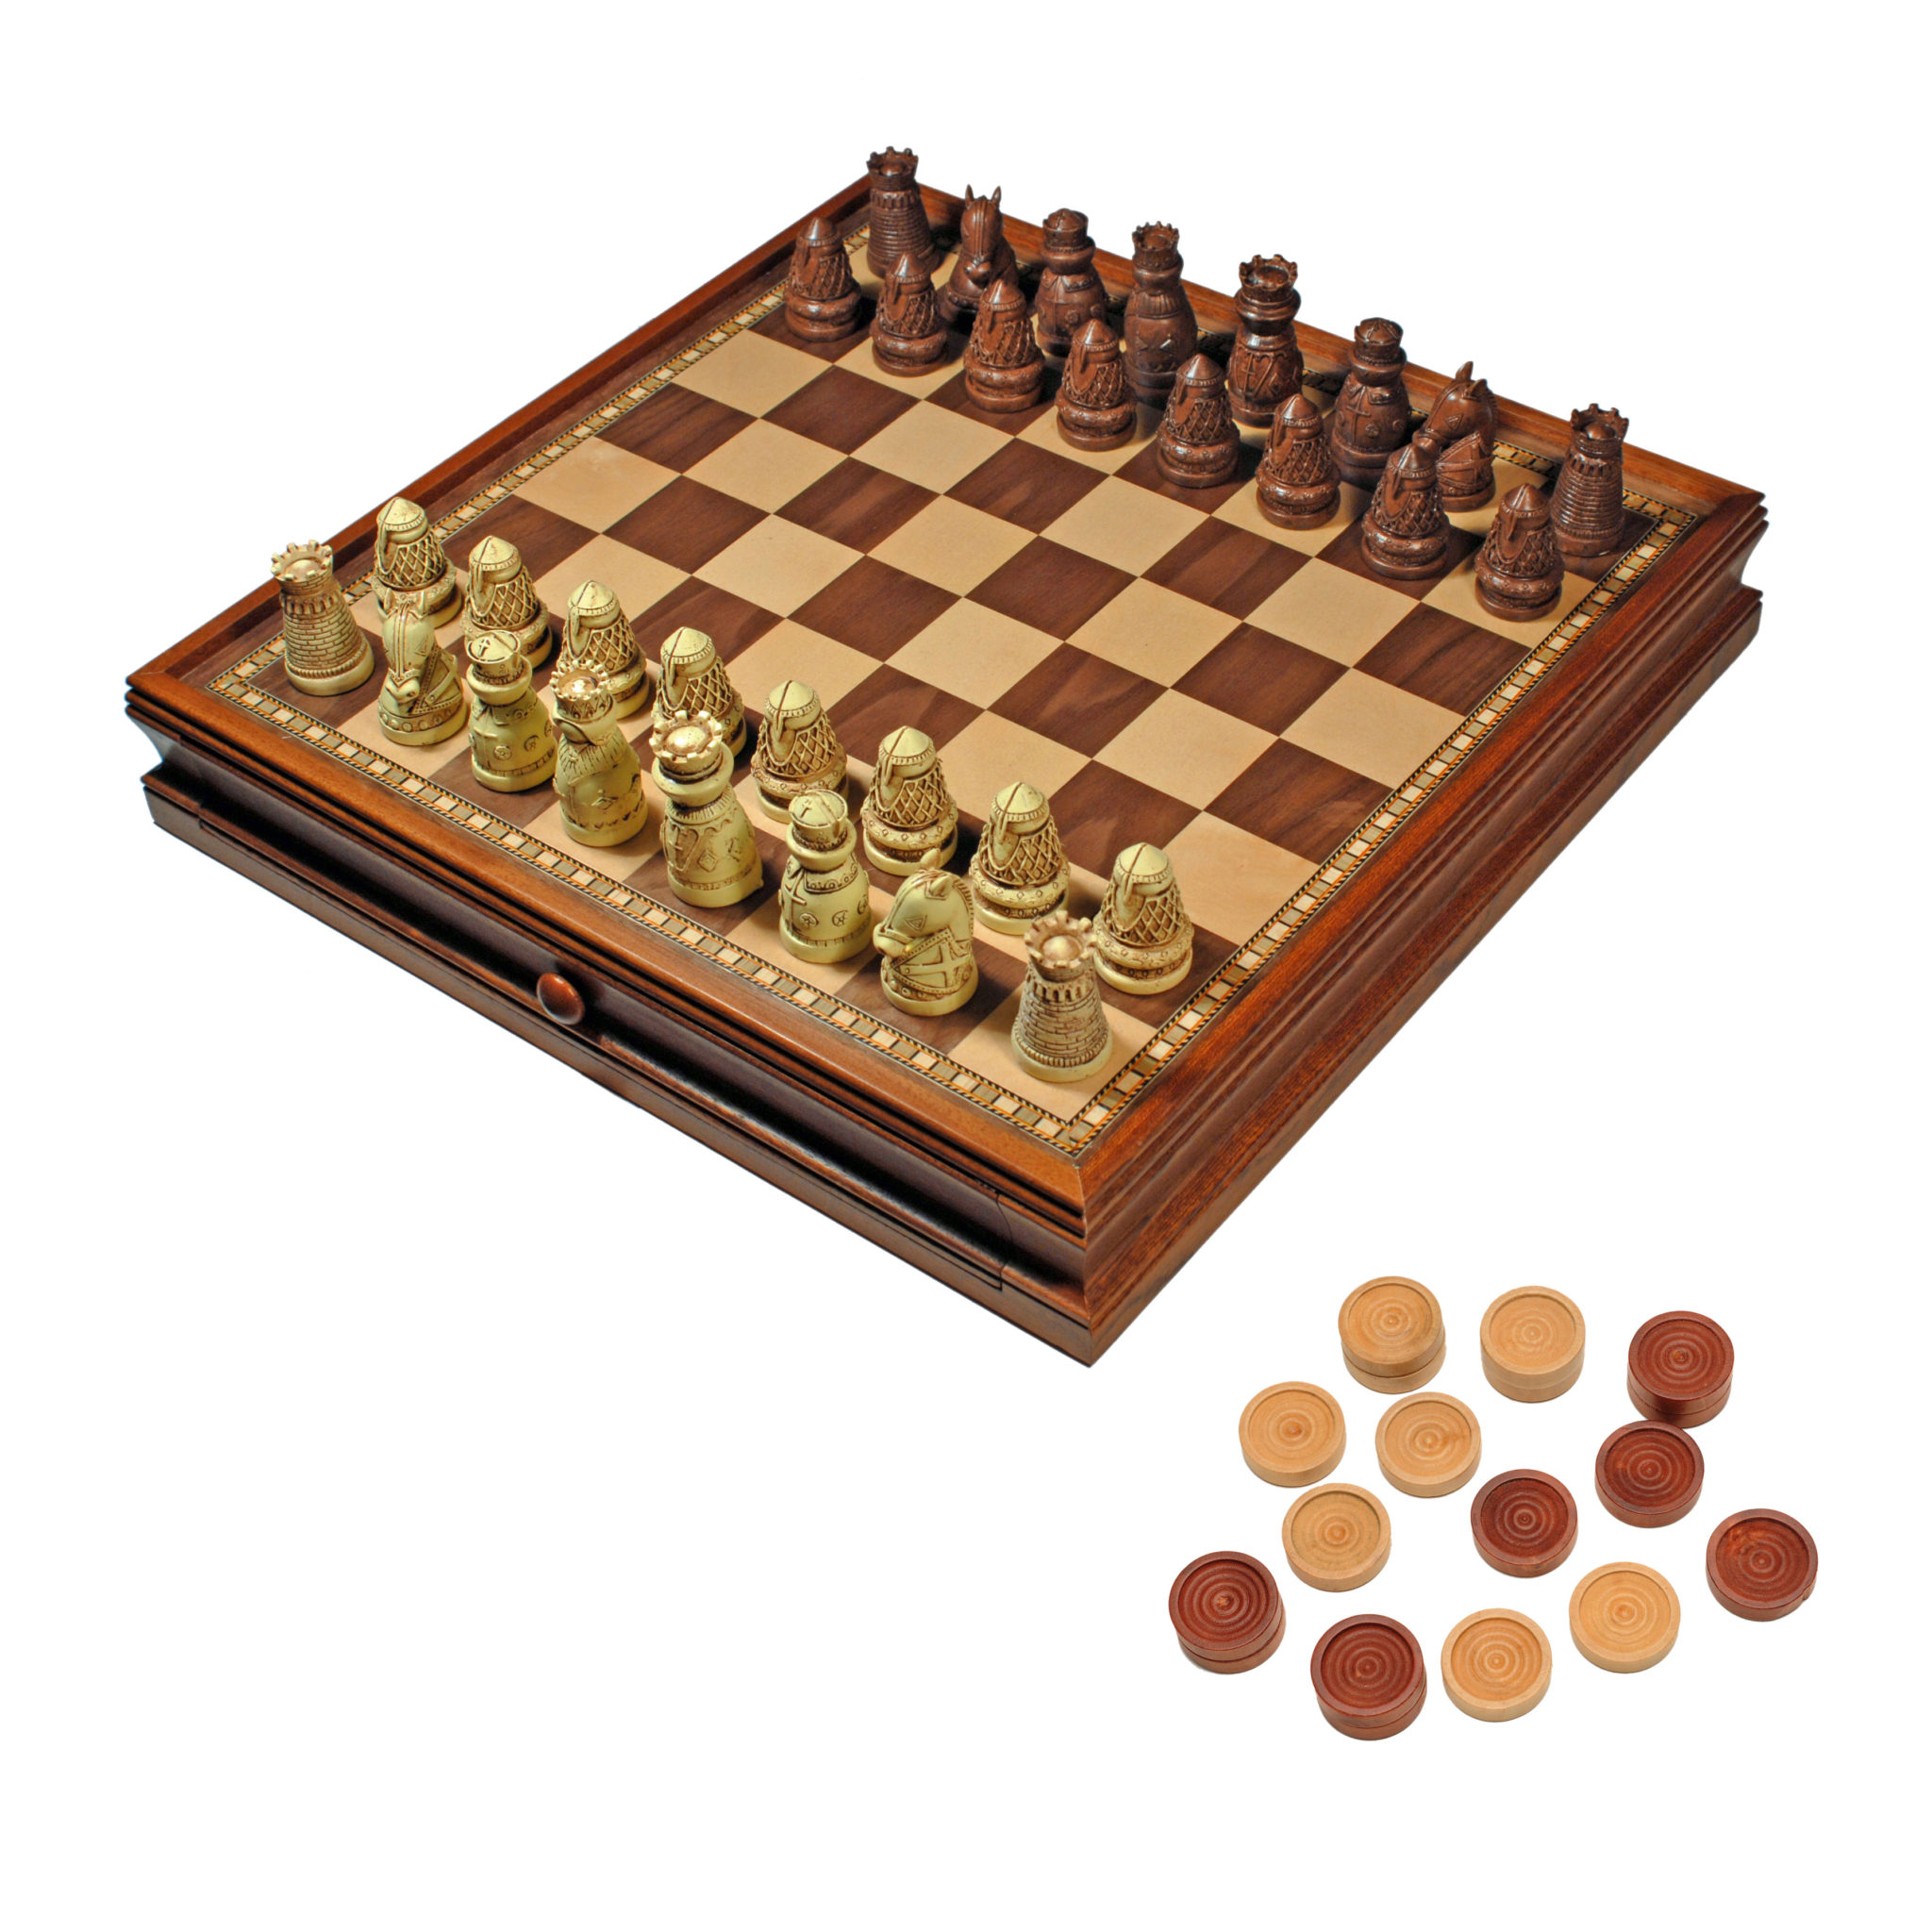 Medieval chess checkers game set brown ivory chessmen wood board with storage drawers 15 - The chessmen chess set ...